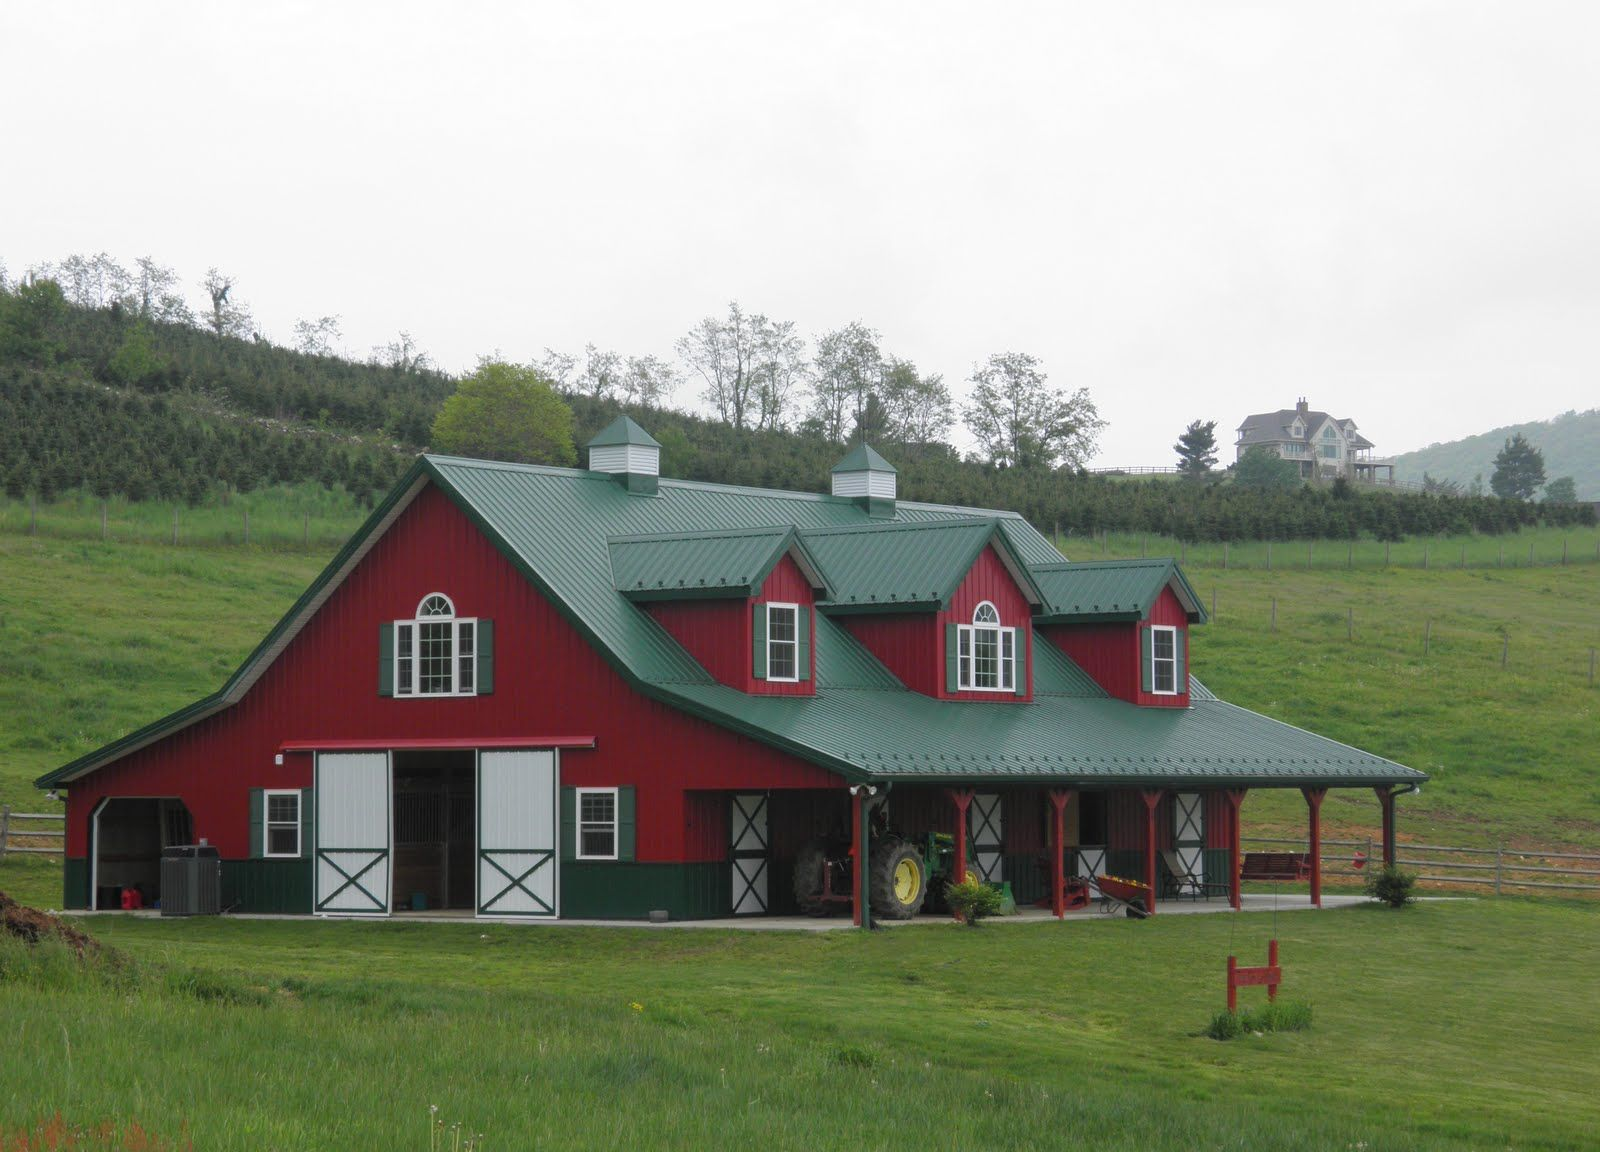 House that looks like red barn images at home in the for American barn house floor plans